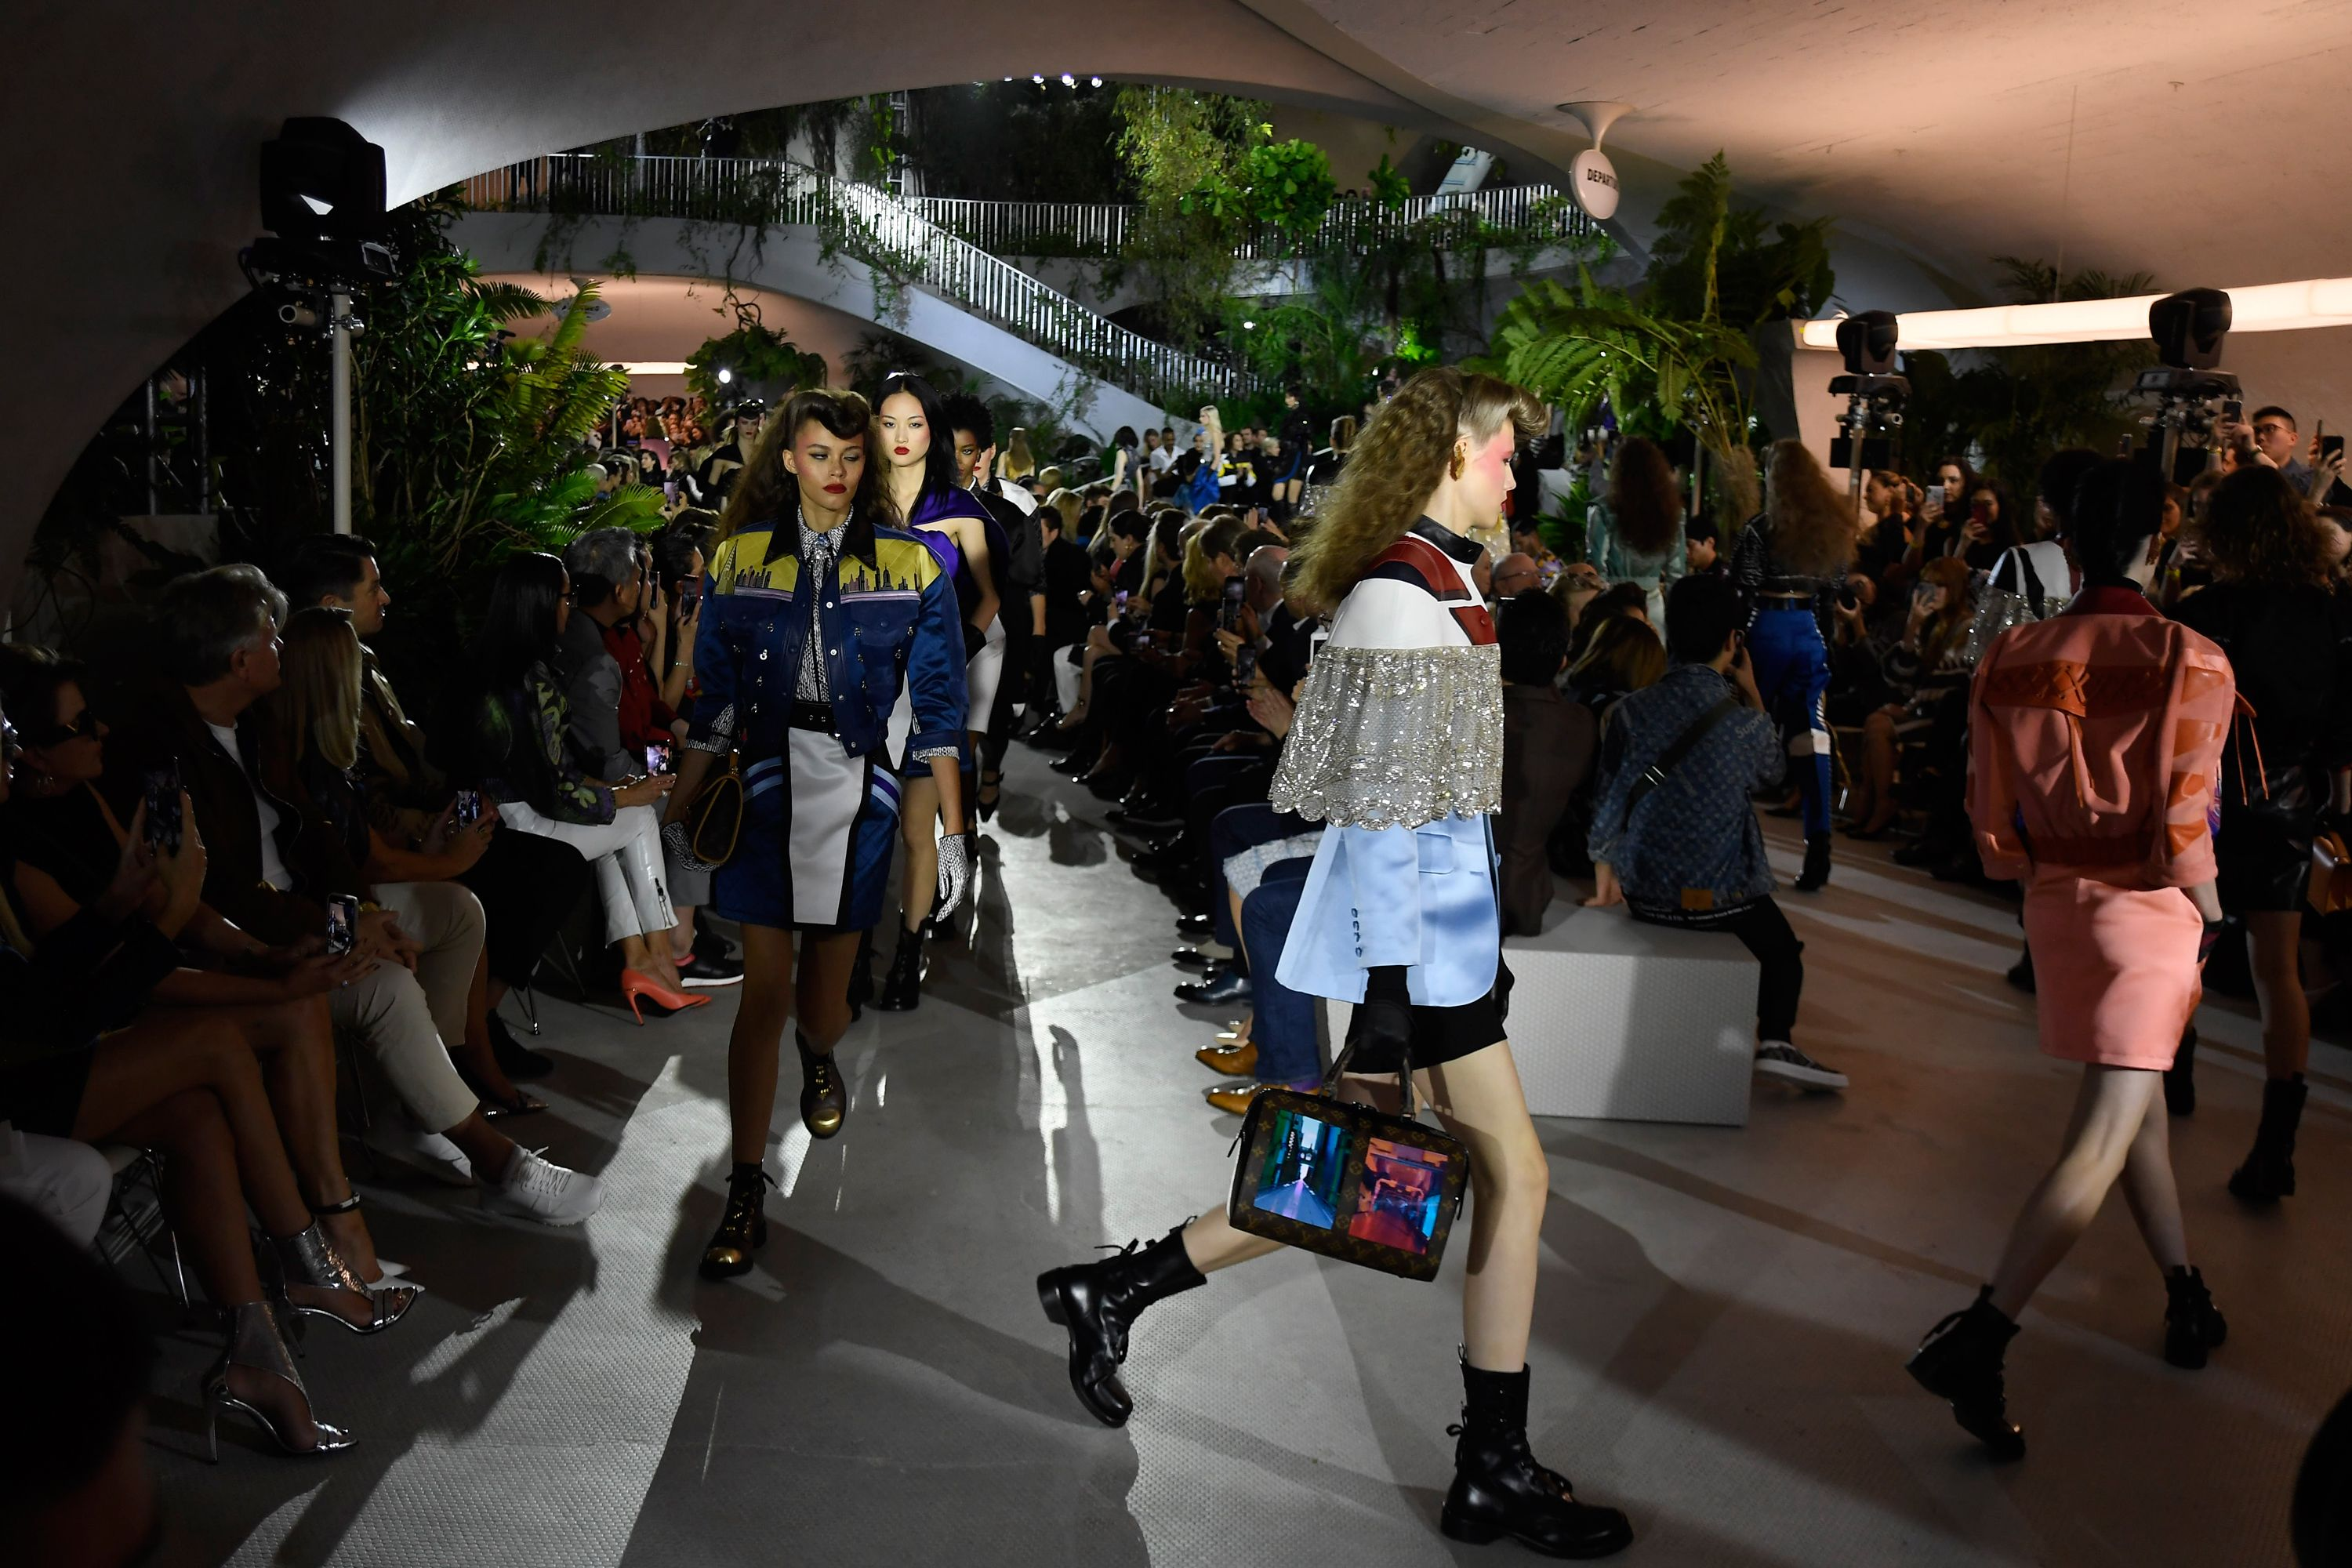 Models debuted futuristic Louis Vuitton handbags outfitted with screens.